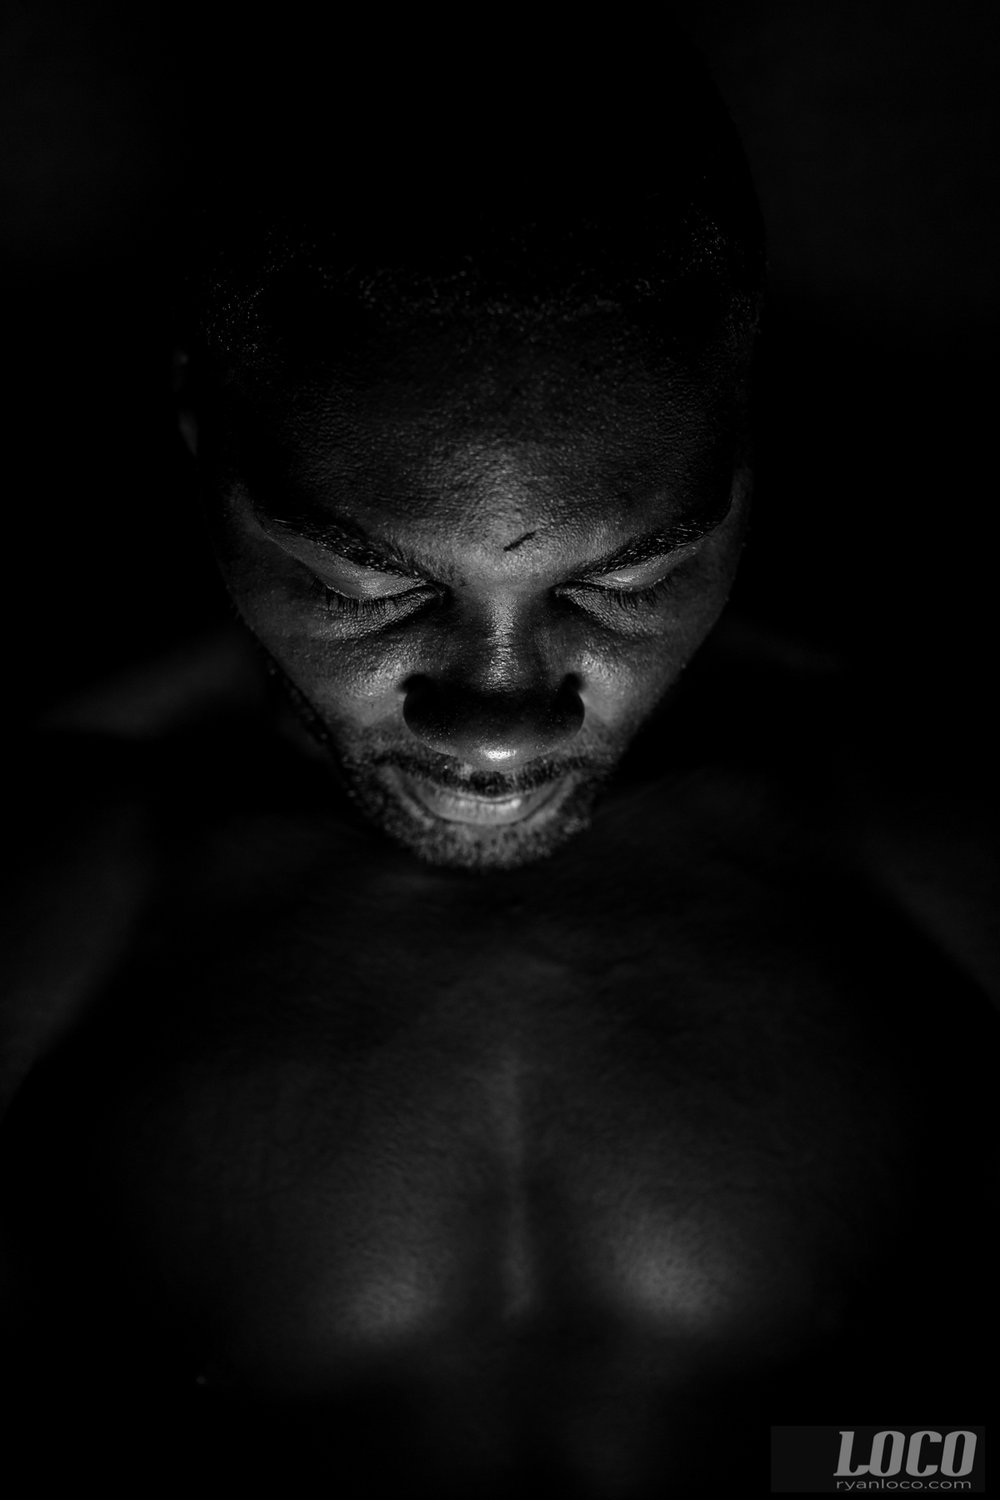 Anthony Johnson in the training room, the week before his fight with Glover Teixeira. I had Anthony hold a light in his hands to take this portrait.